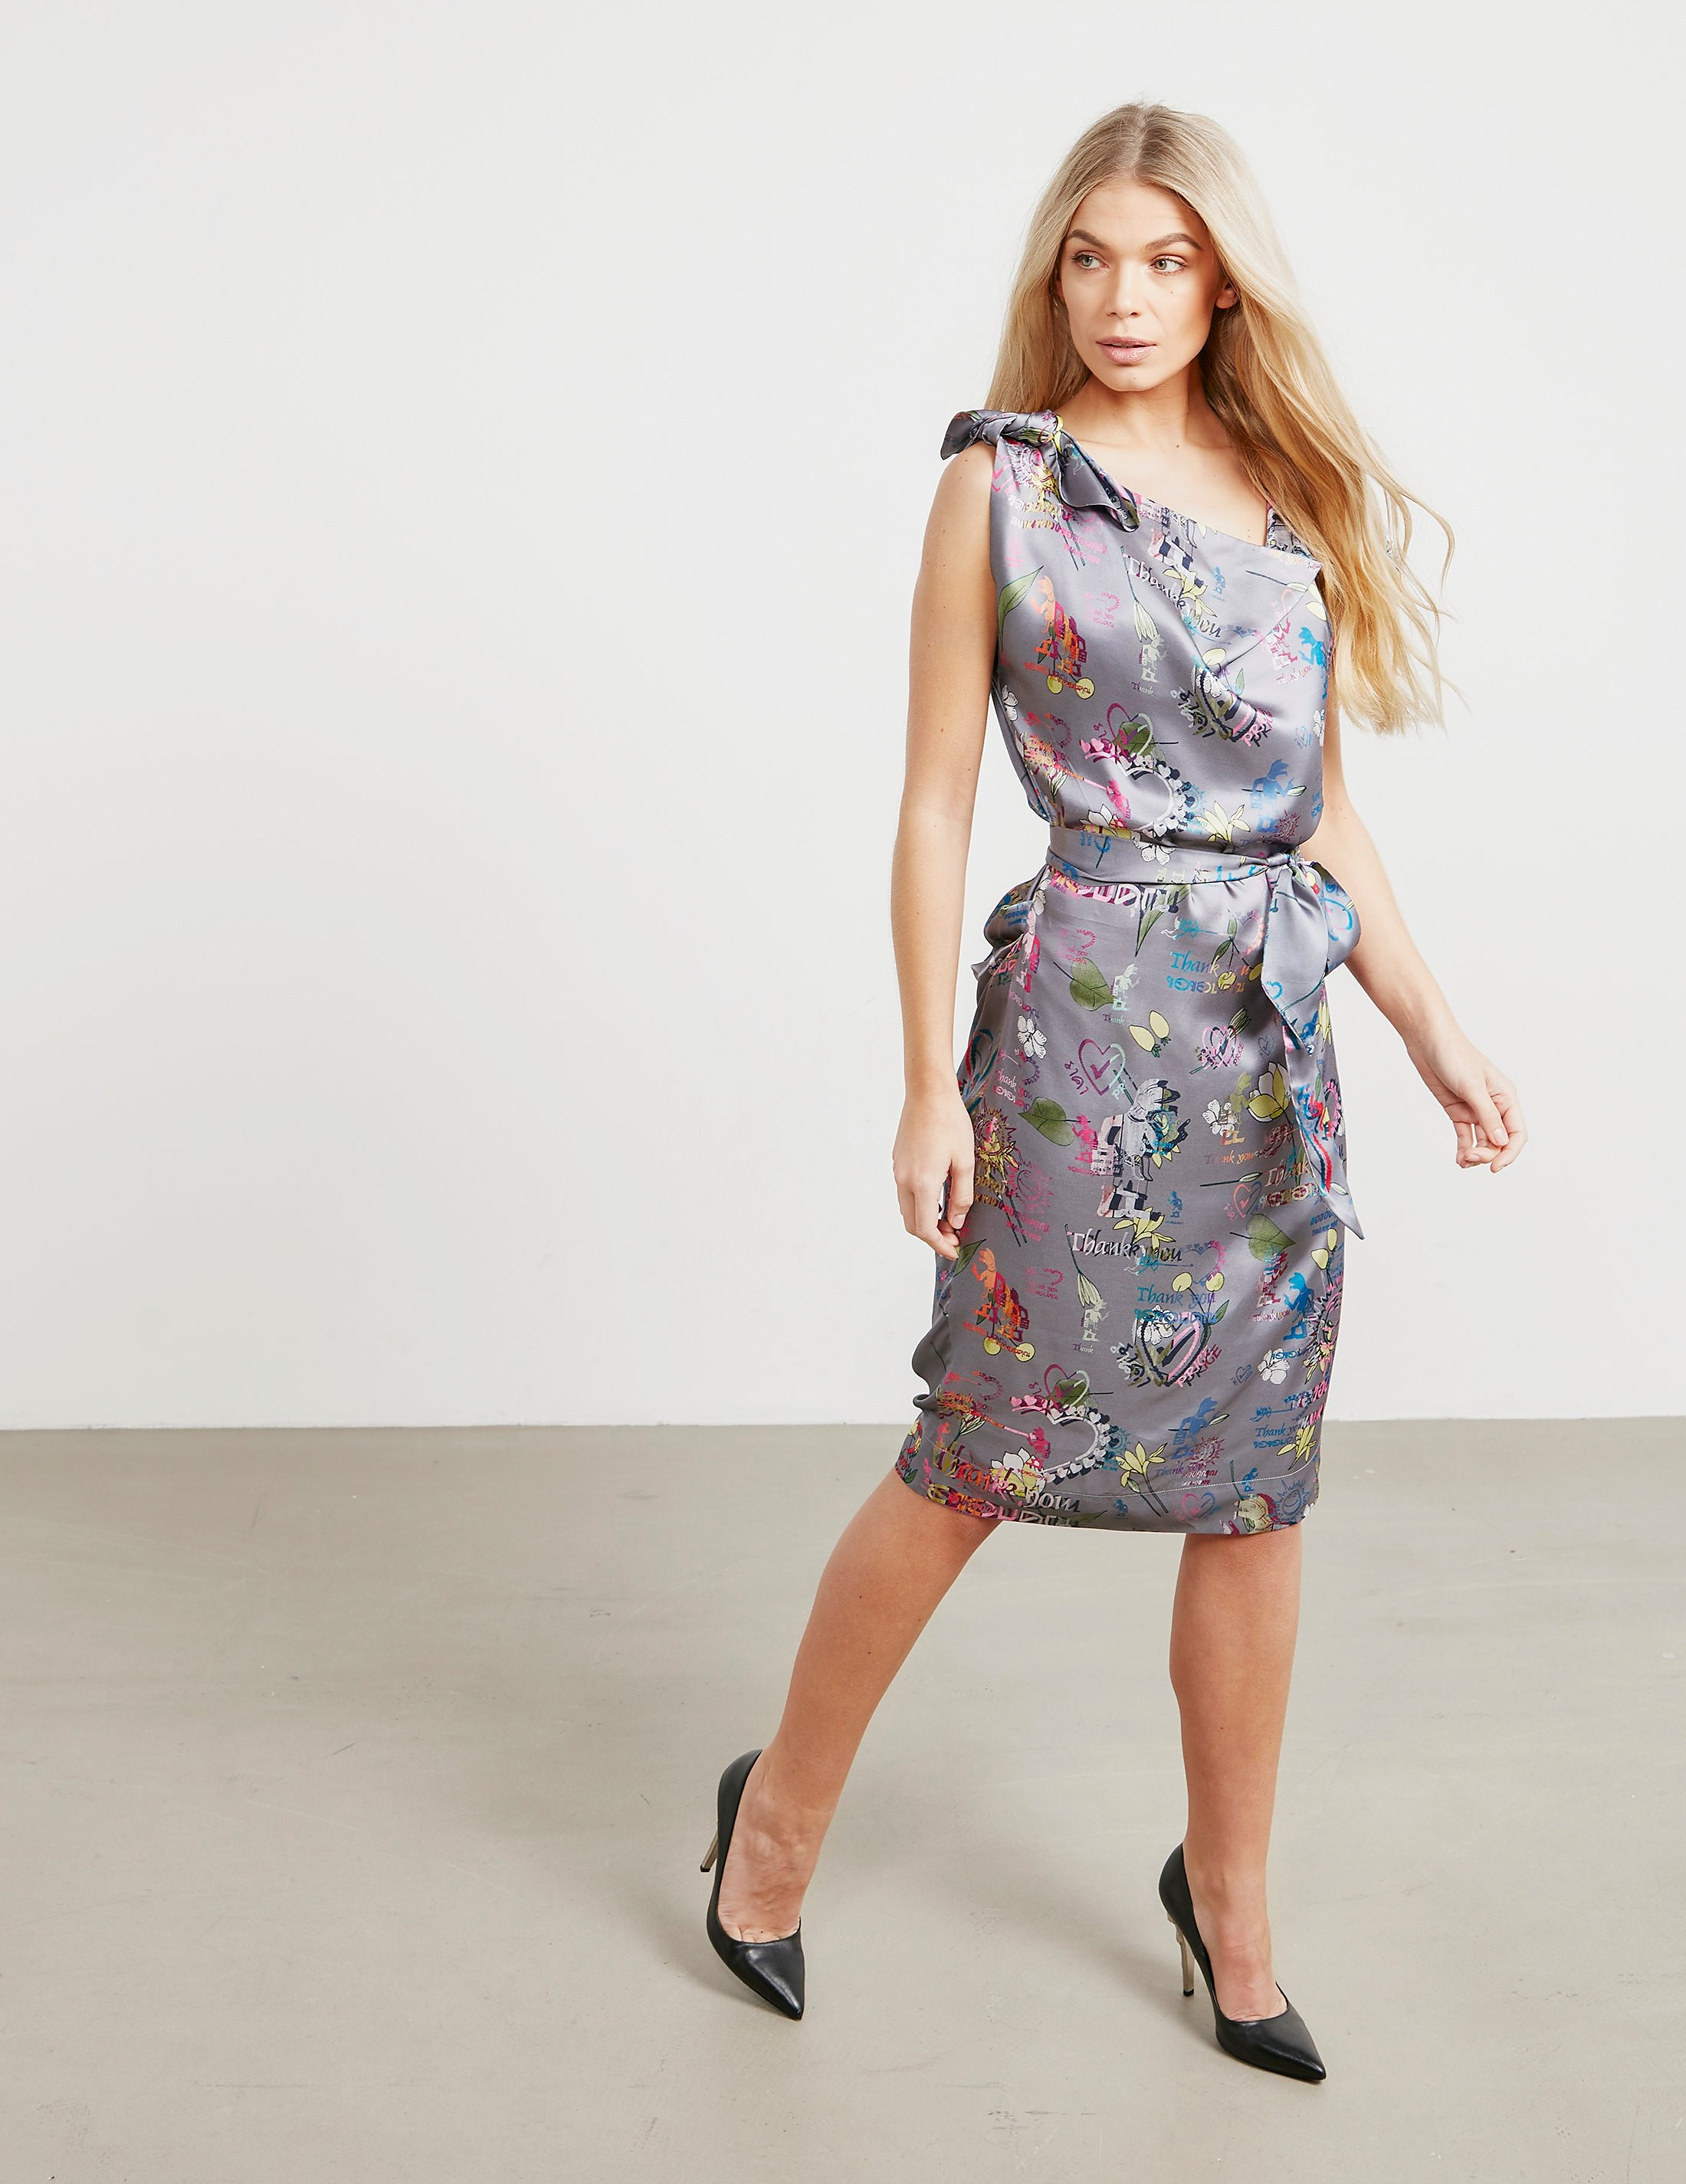 Vivienne Westwood Anglomania Shore Print Dress